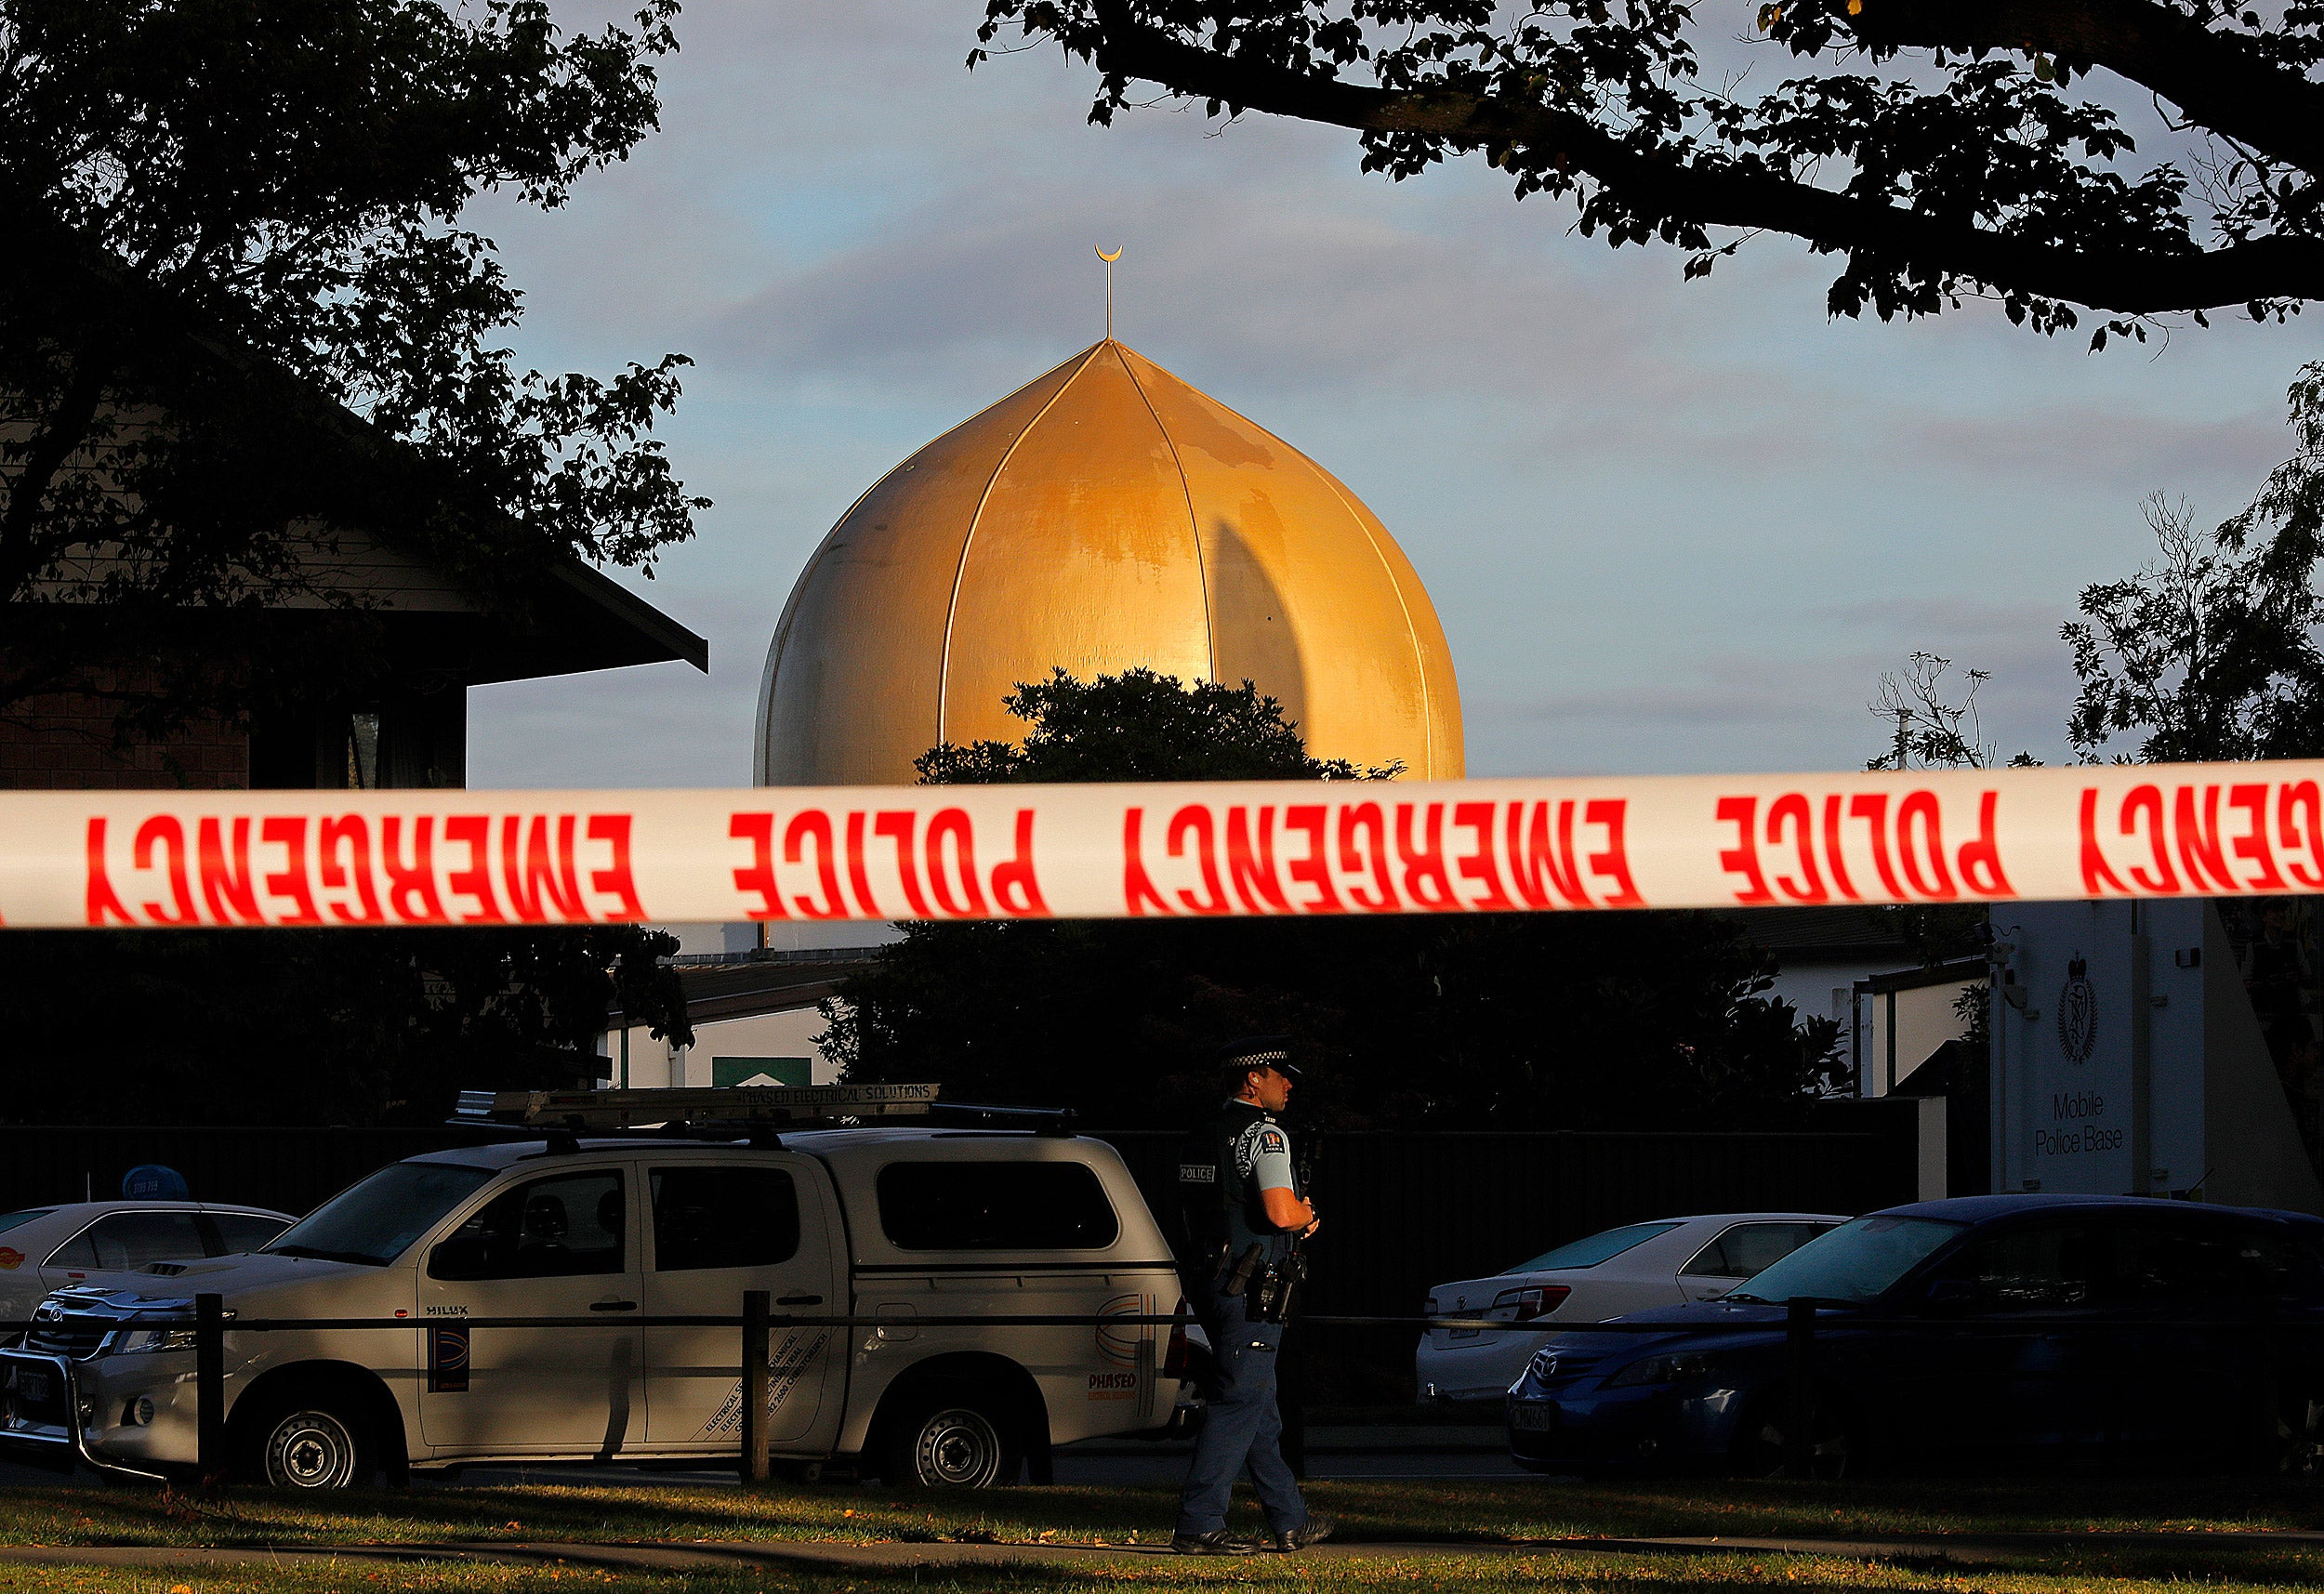 Last week, 50 people were killed in a mass shooting targeting two mosques in Christchurch, New Zealand.